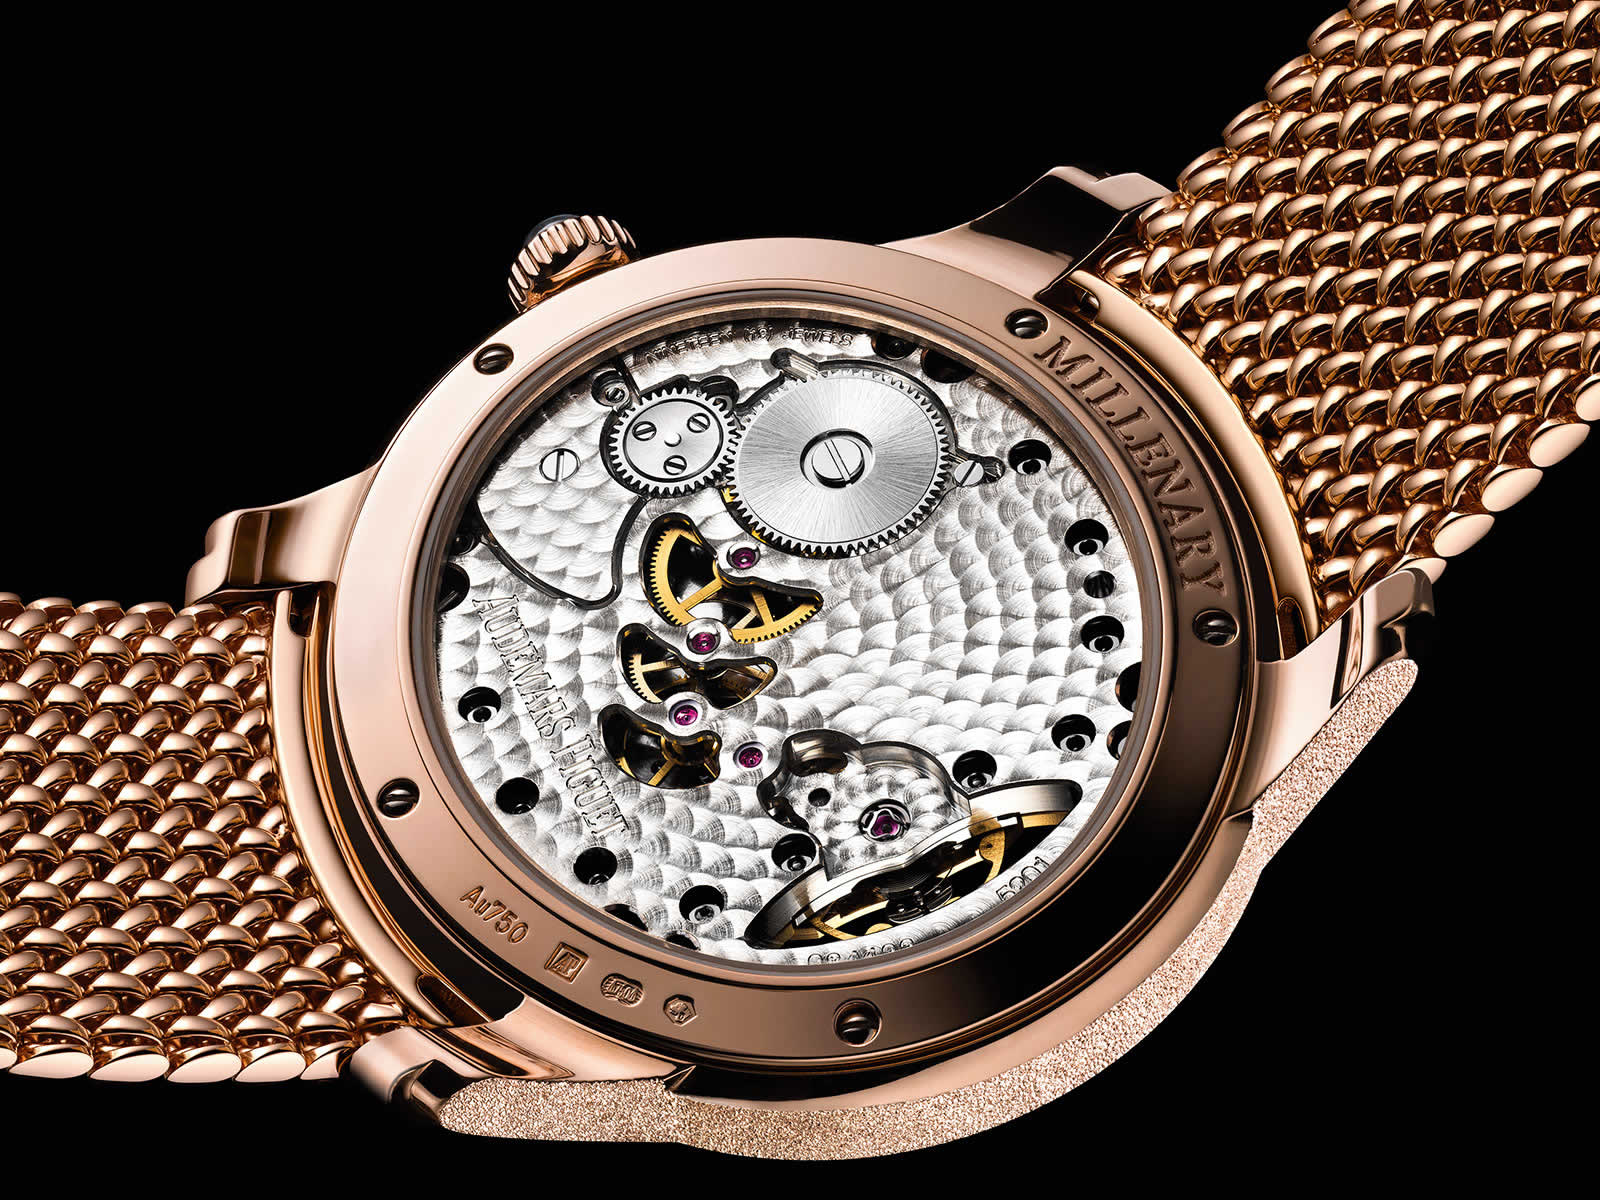 Audemars-Piguet-Frosted-Gold-Opal-Dial-77244OR-GG-A319CR-01-1-Backcase-Original-Sihh2018.jpg